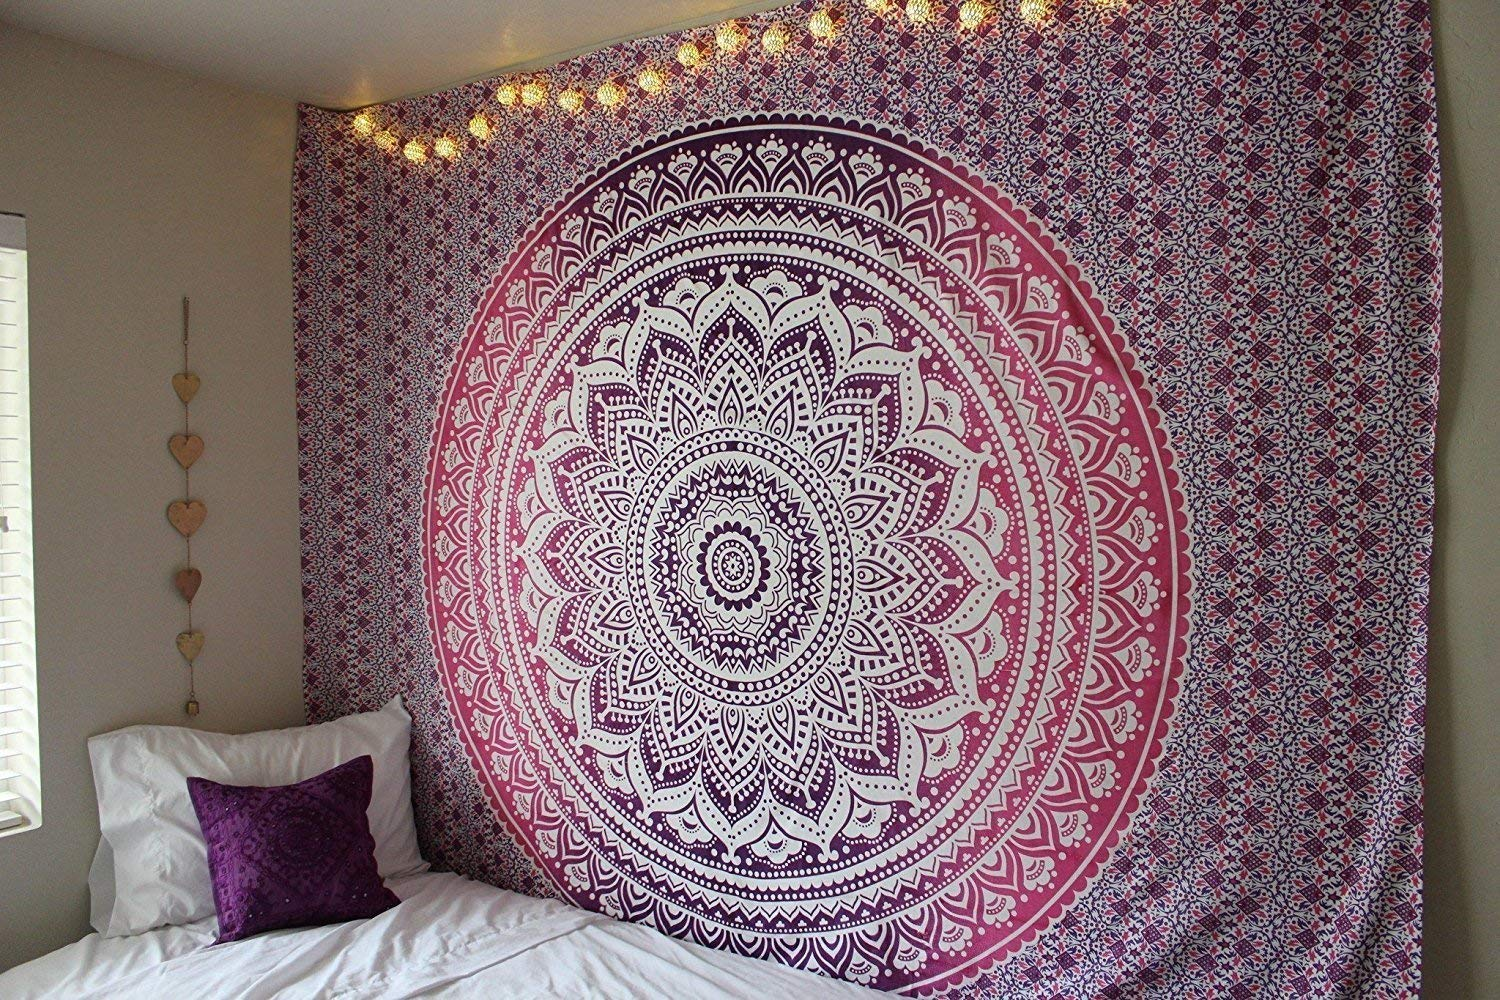 Hippie Tapestries, Mandala Tapestries, Tapestry Wall Hanging, Bohemian  Tapestries, Wall Hanging, Indian Tapestry, Hippie Dorm Tapestries , Wall  Tapestry,